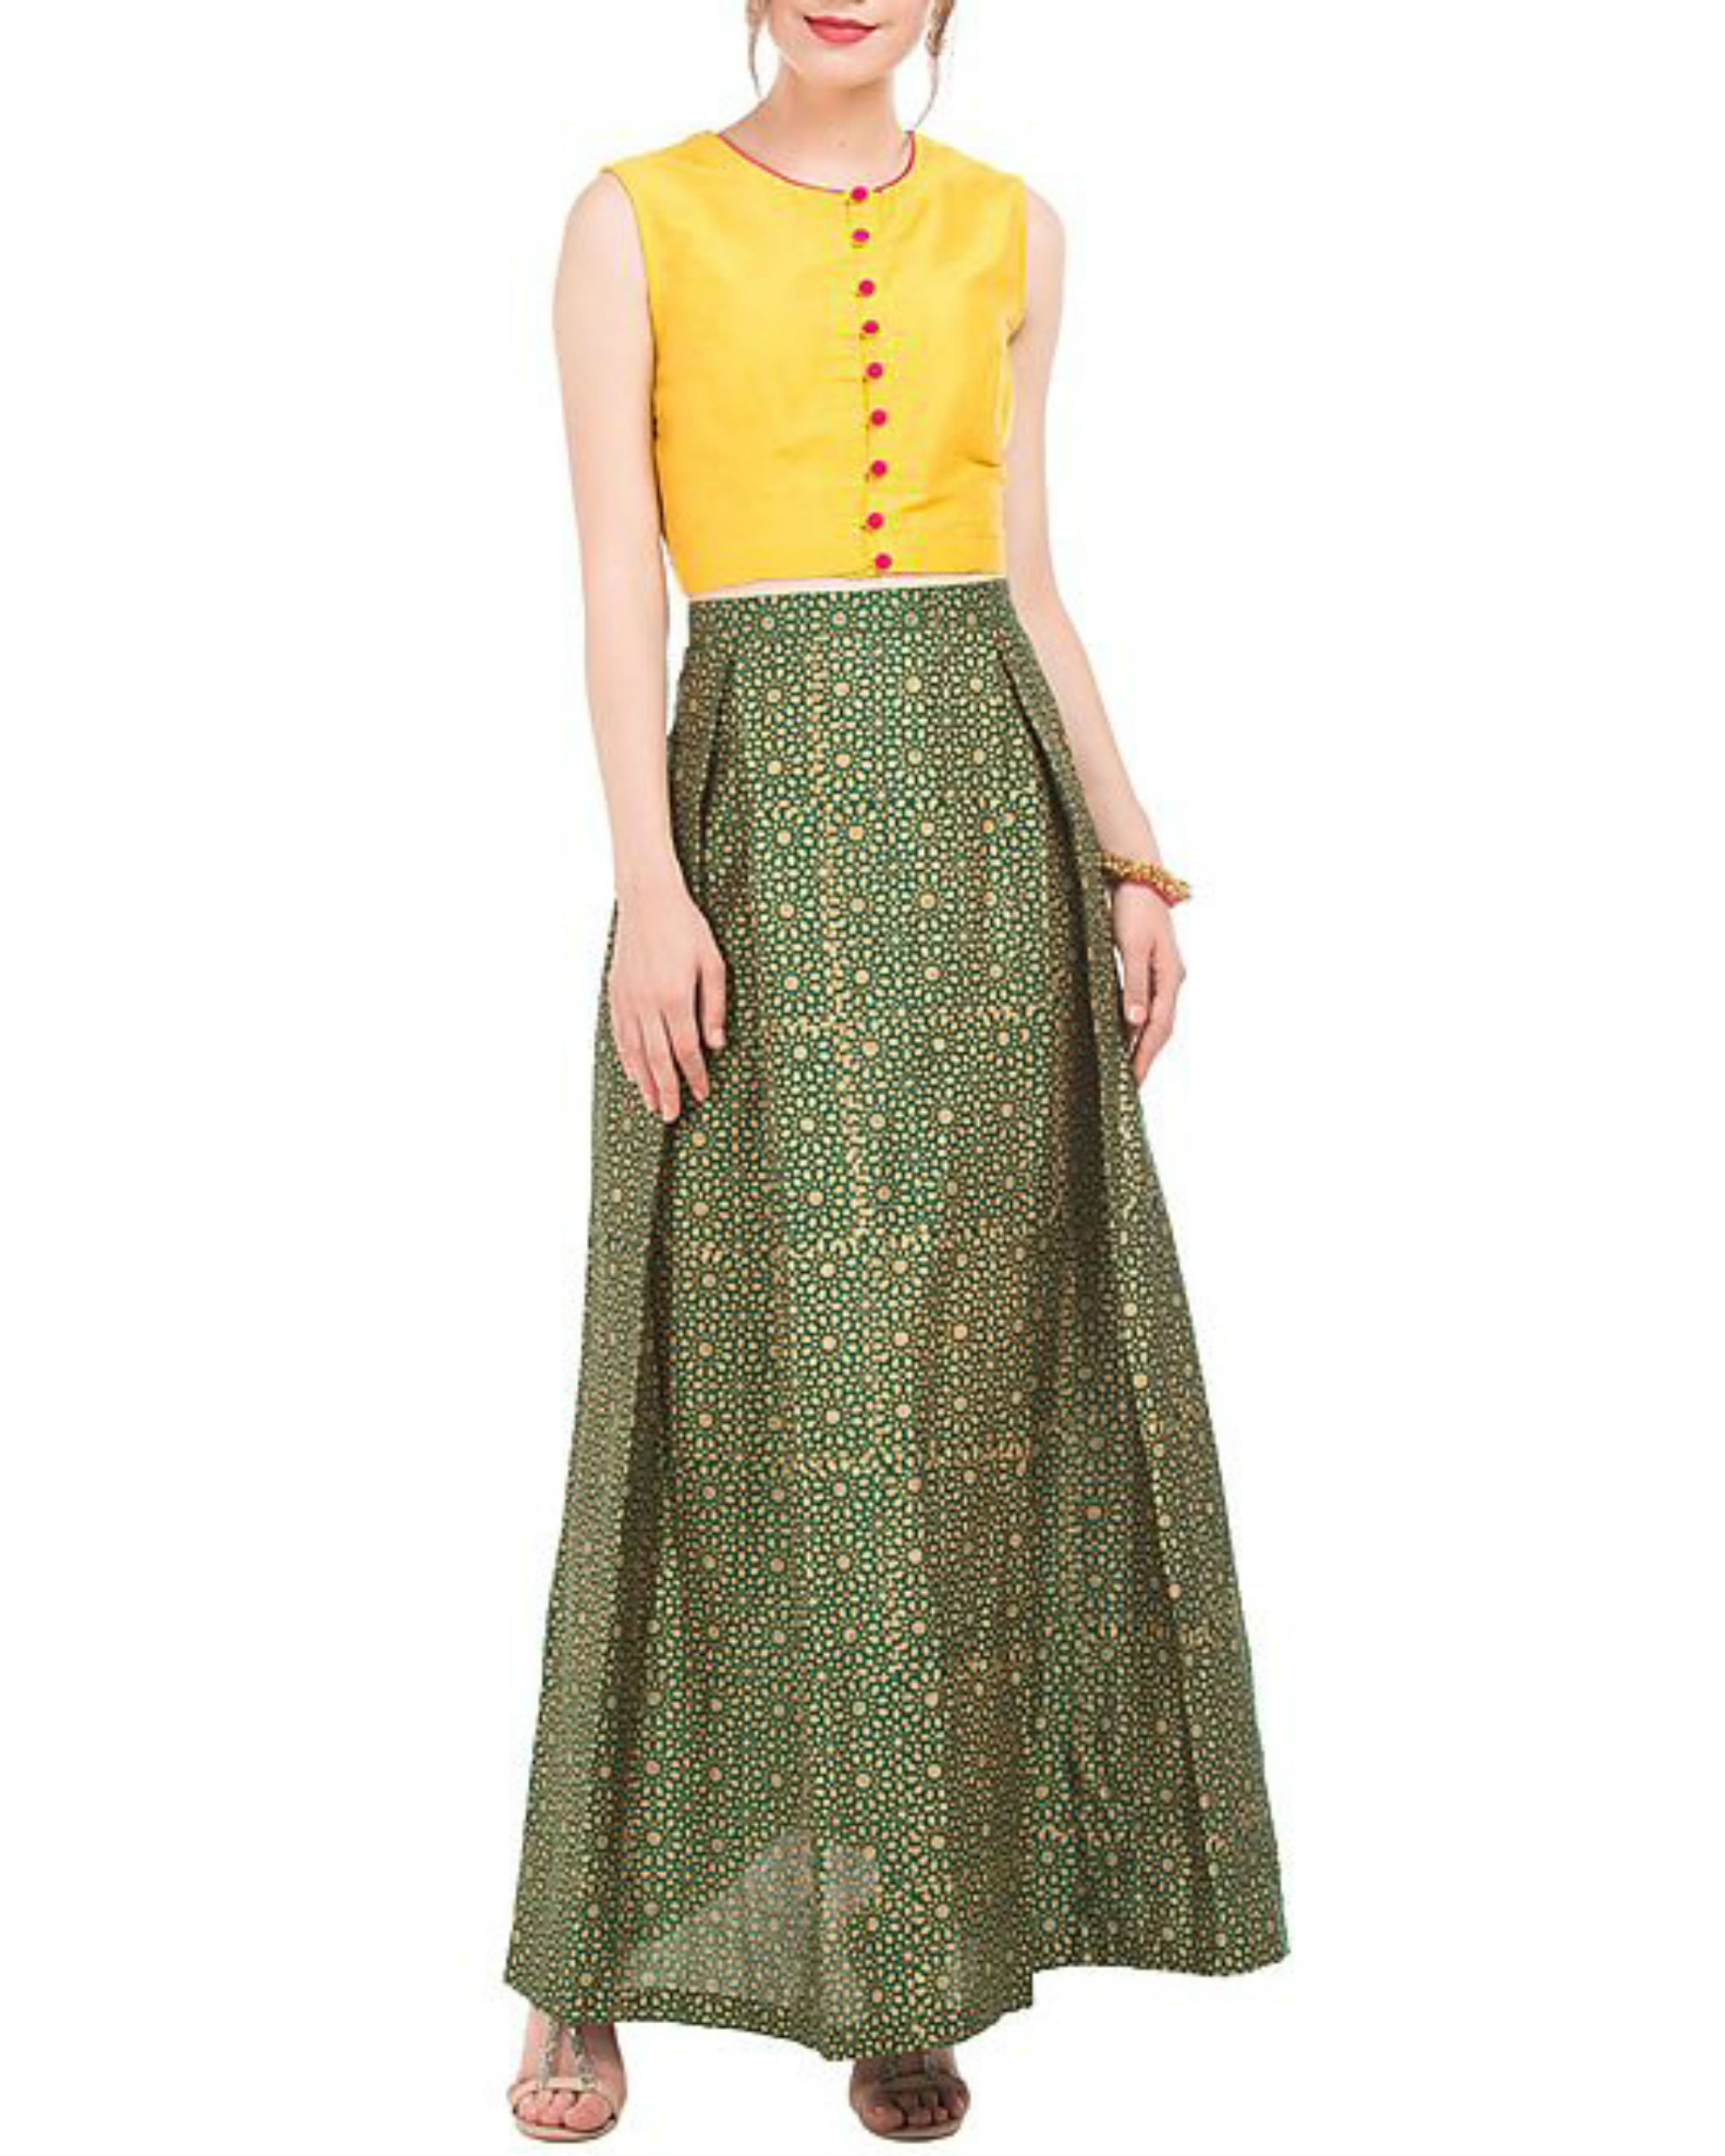 Yellow crop top and green skirt with block prints